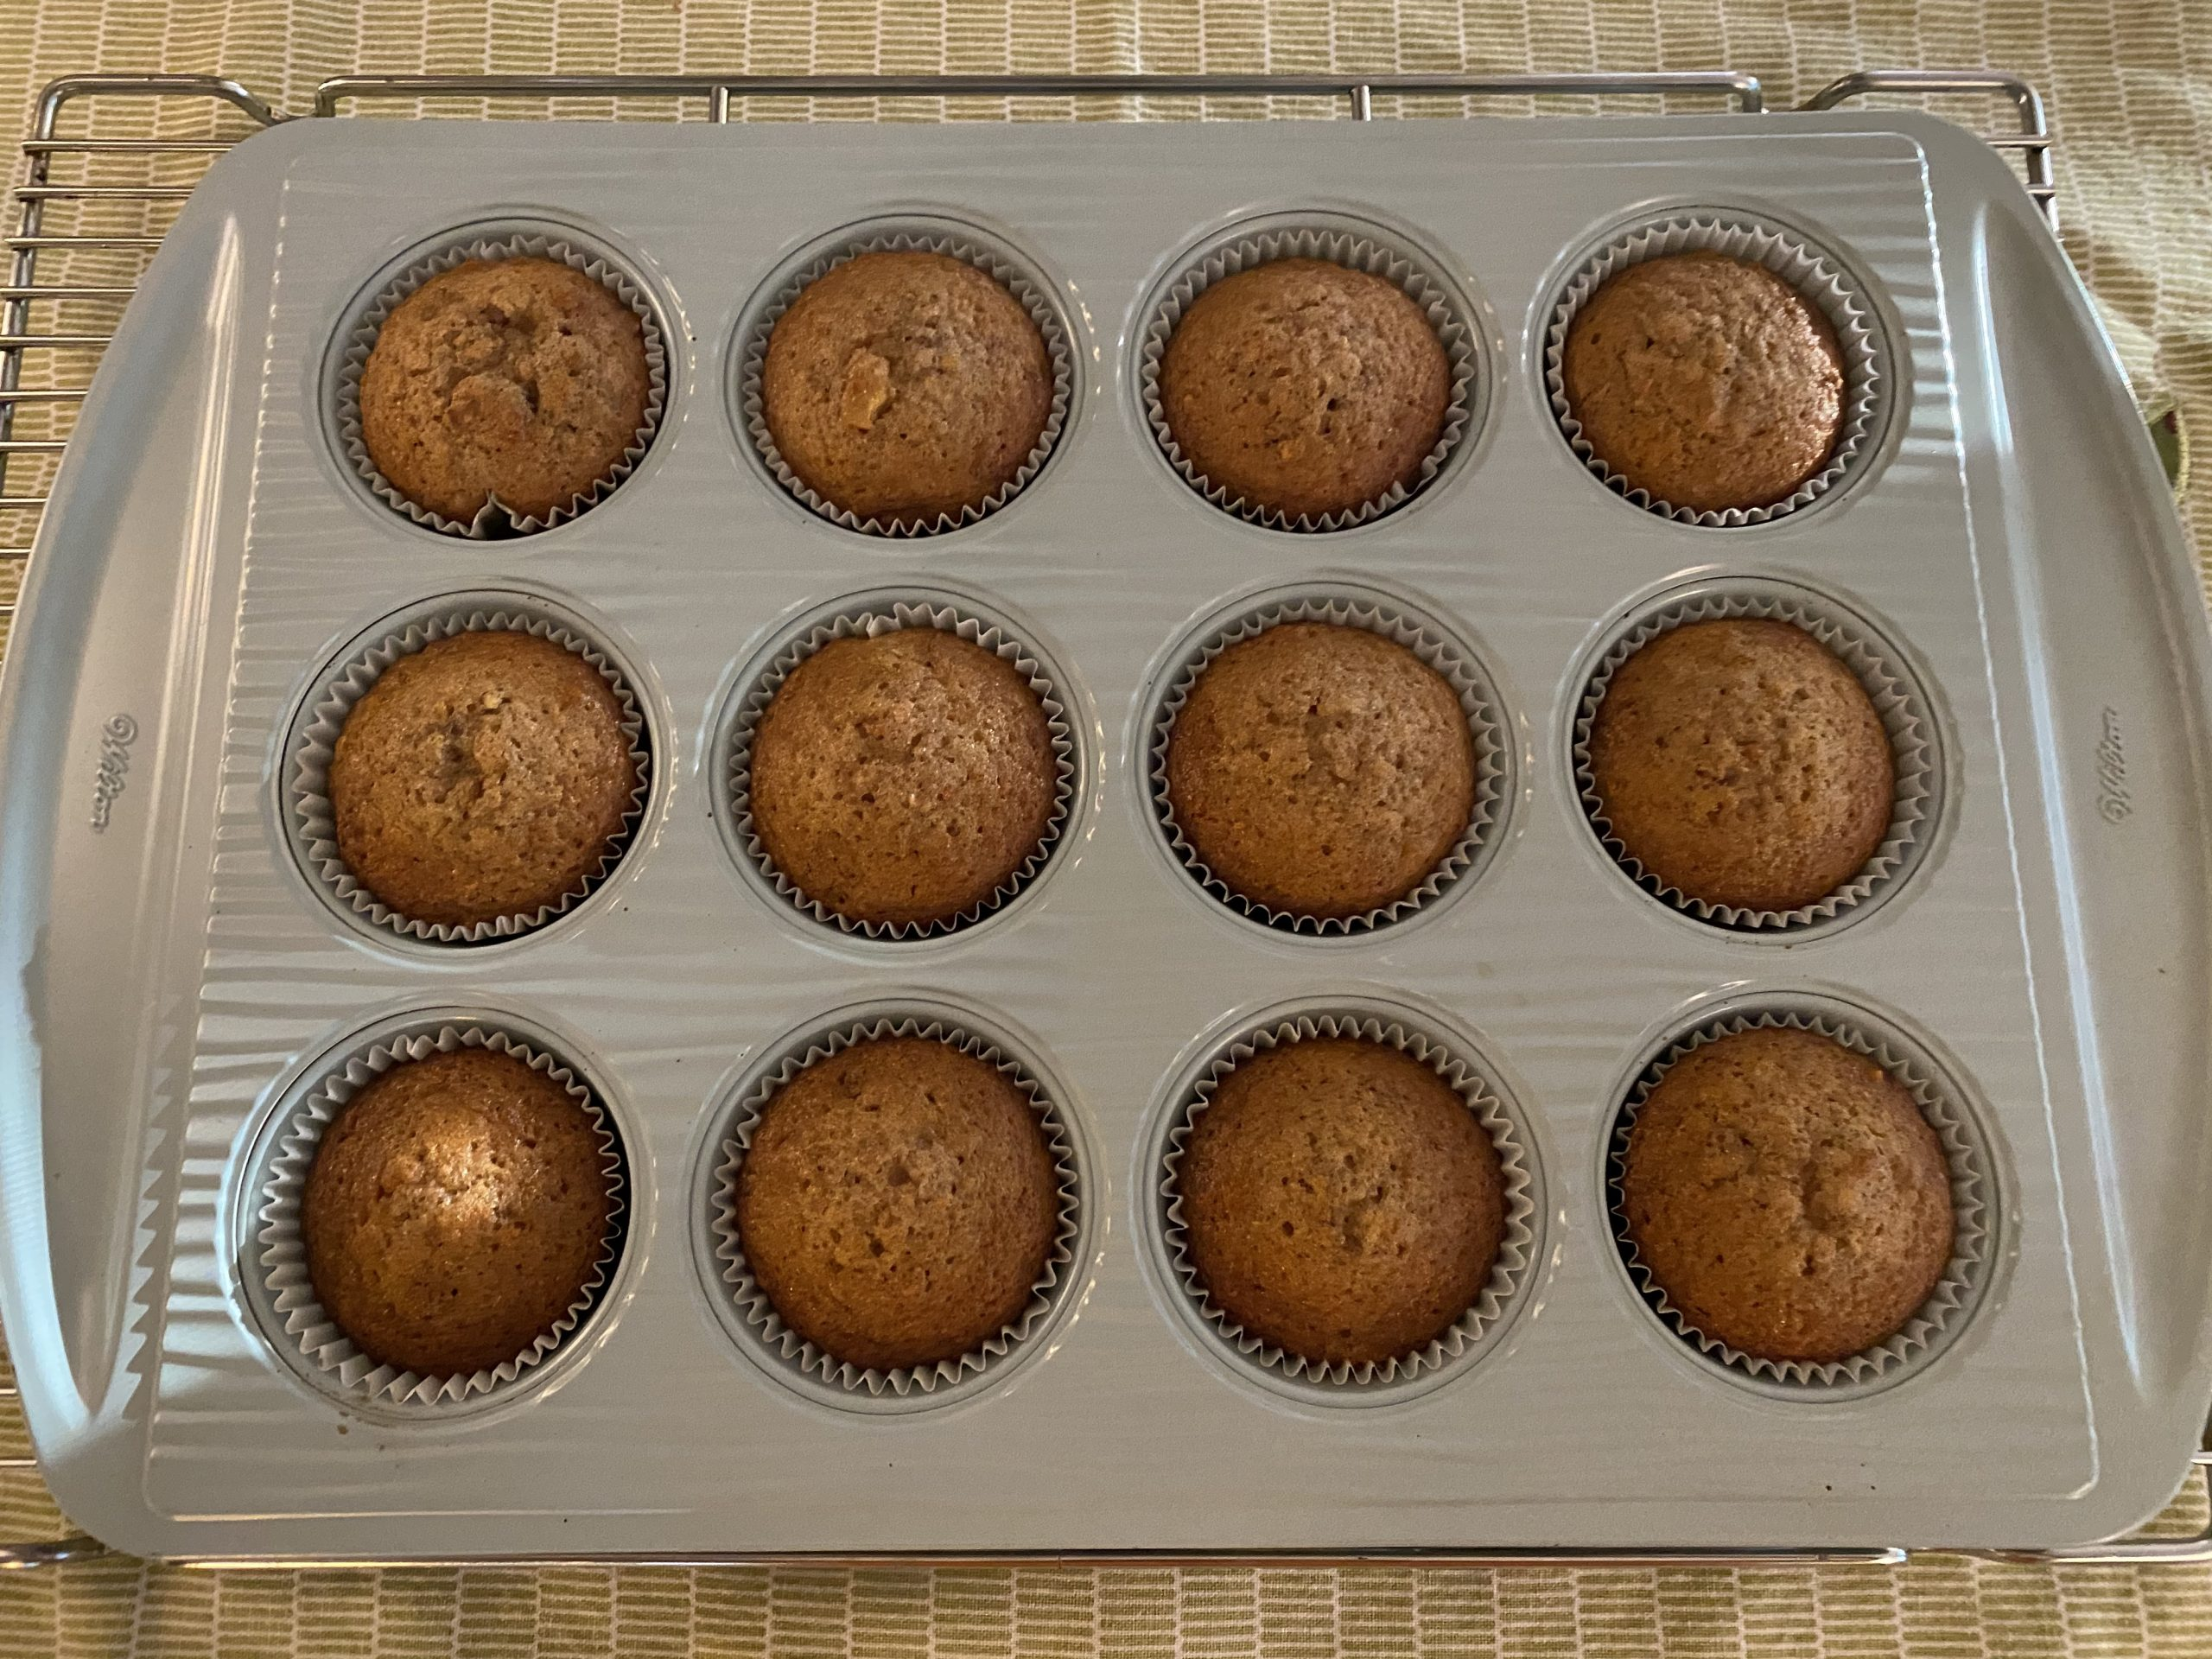 Bake Morning Glorious Muffins at 350° for 15 minutes